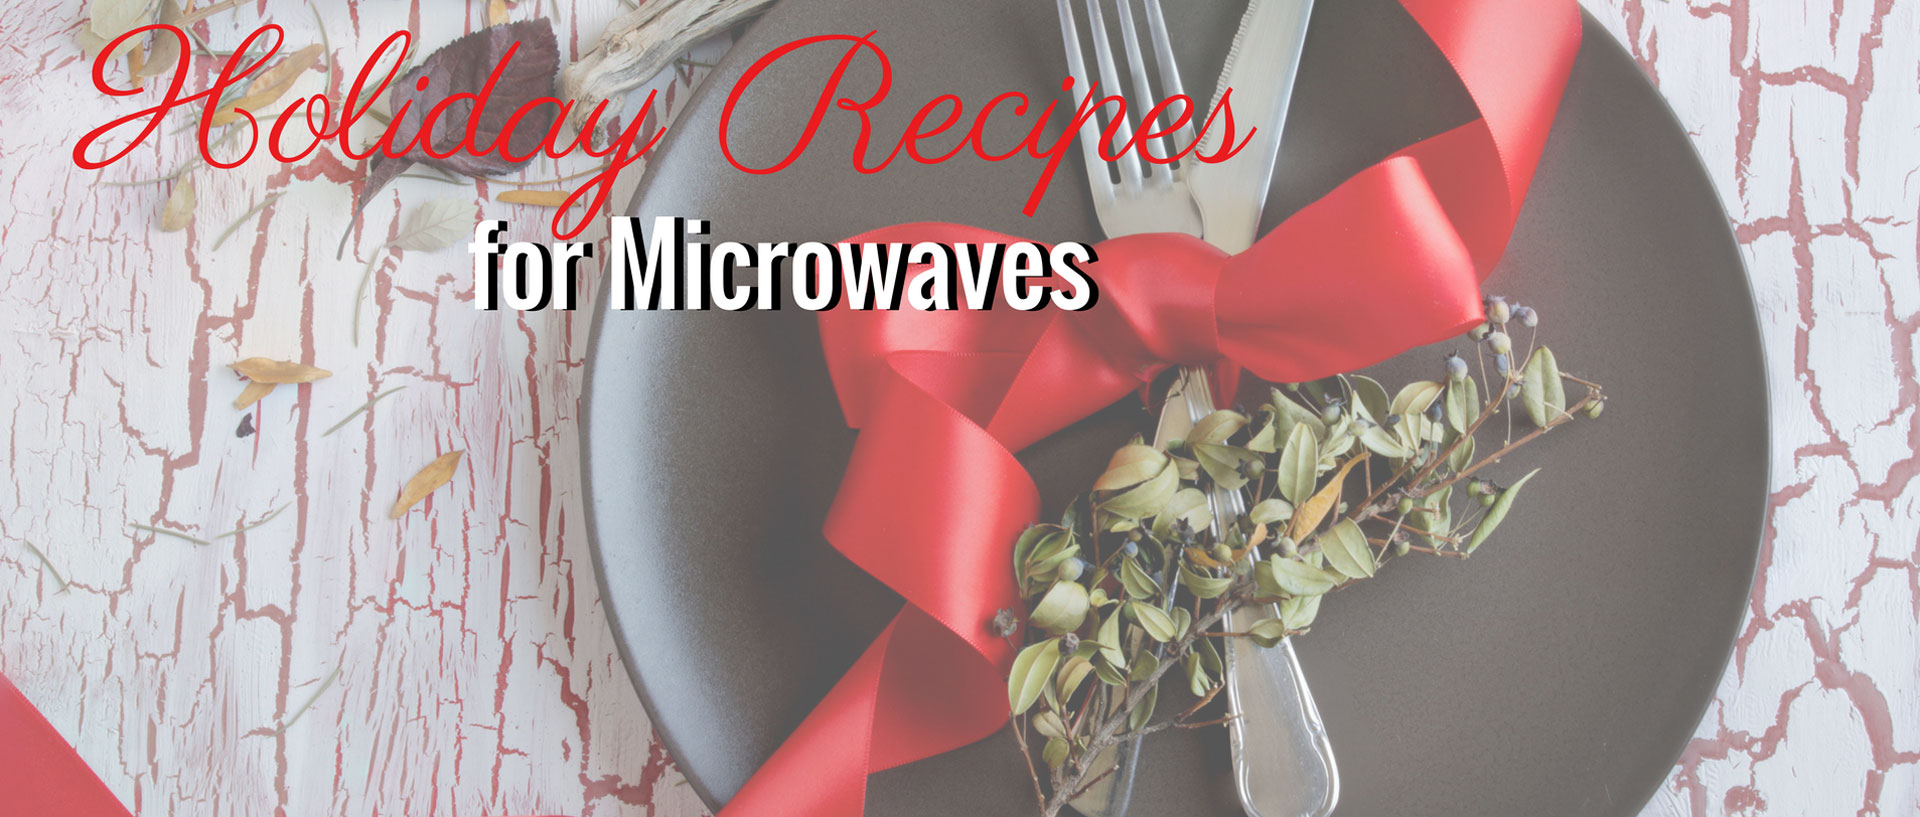 Holiday Recipes for Microwaves